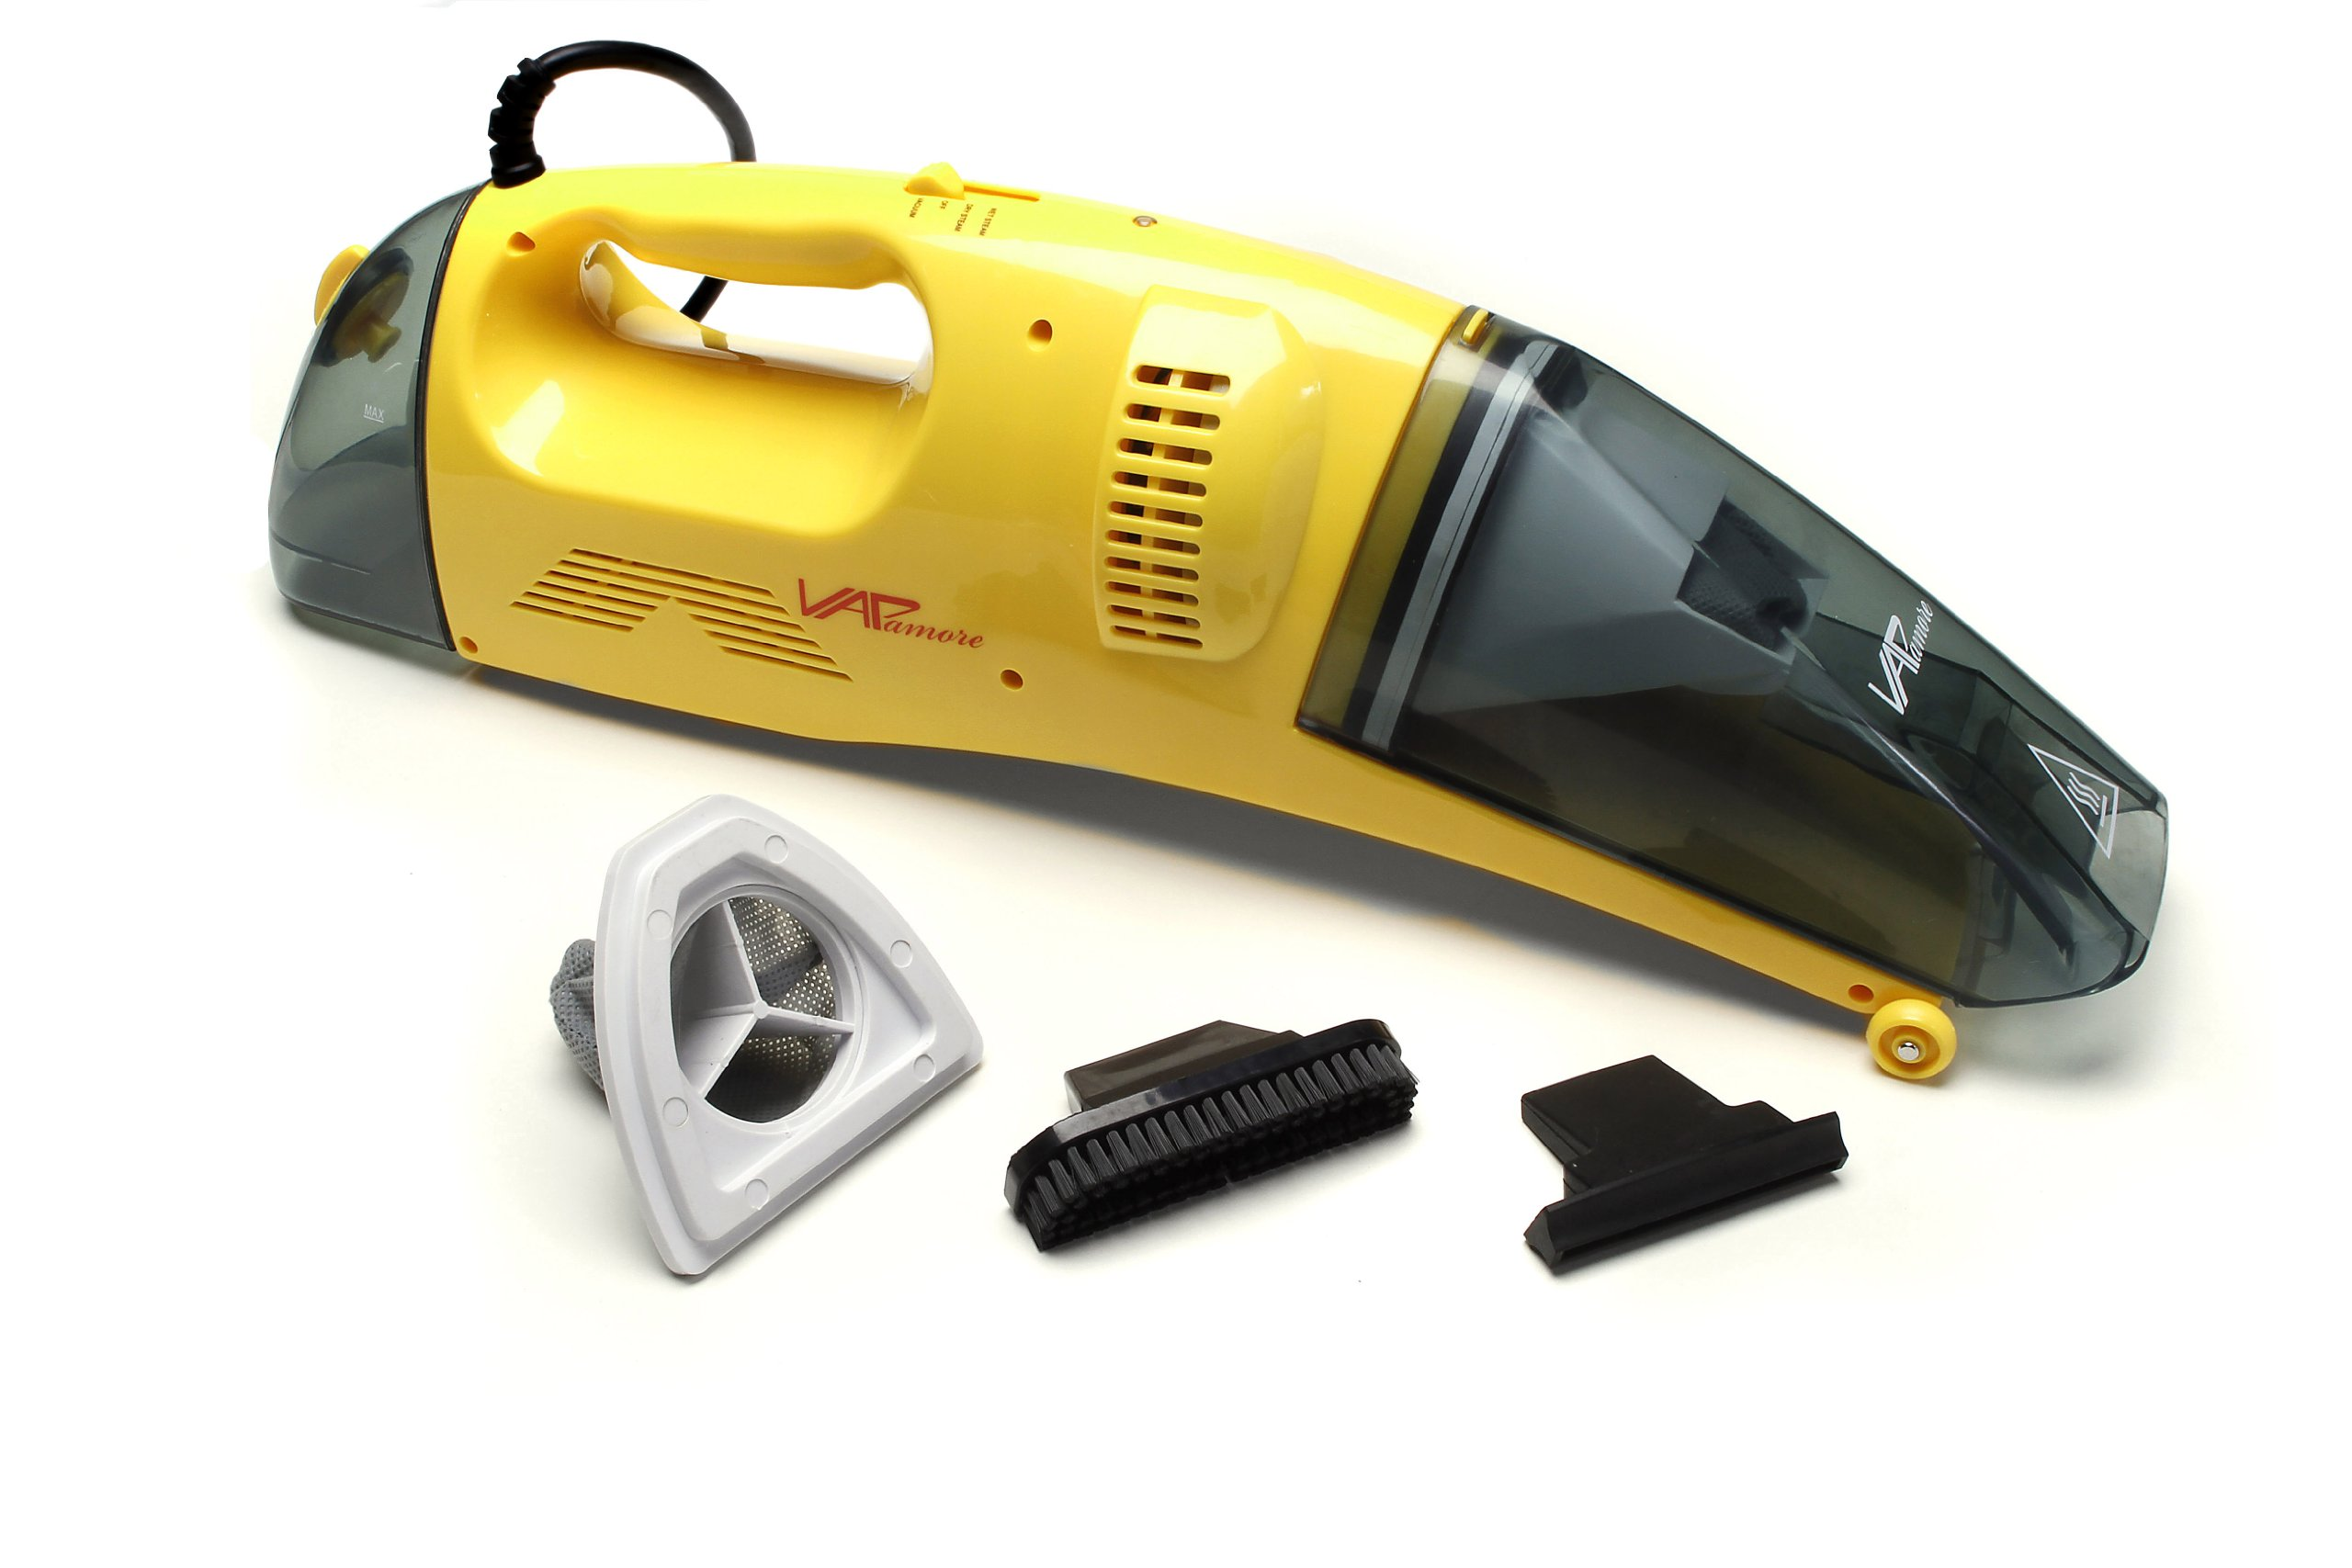 Vapamore MR-50 Wet-Dry Steam Cleaner and Vacuum Combo - Corded by Vapamore